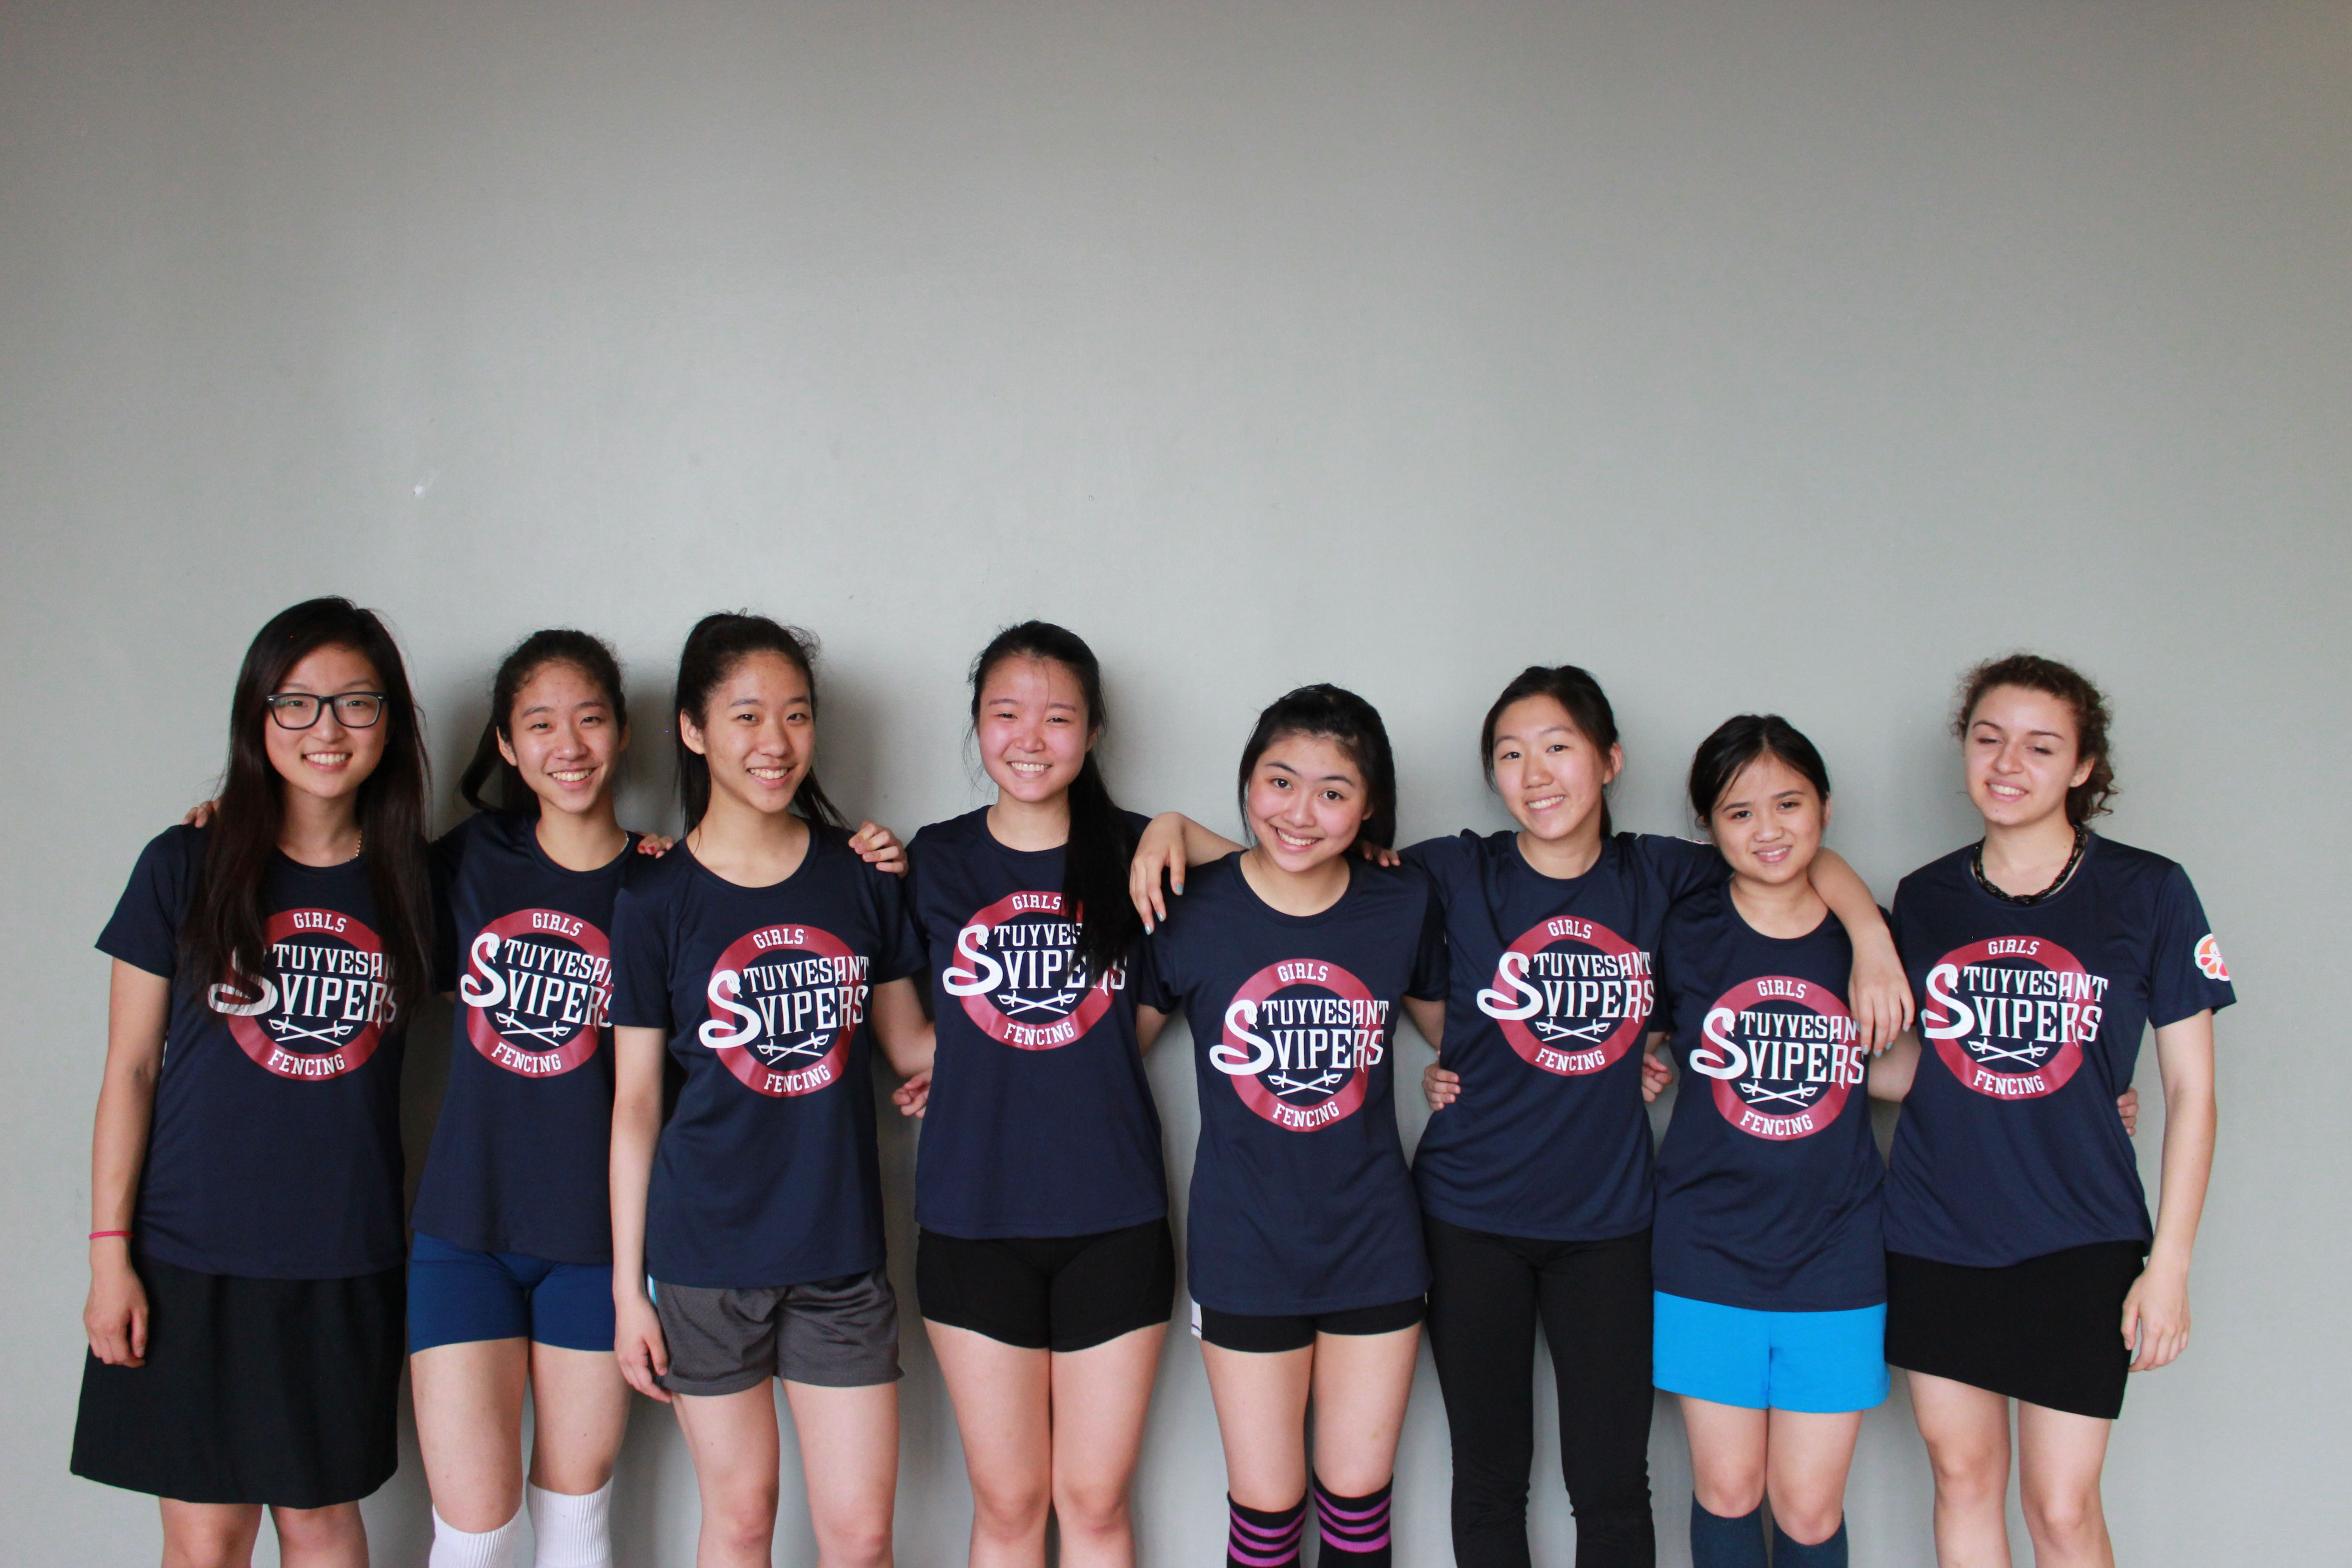 Design t shirt for group - Stuyvesant Vipers Girls Fencing Team T Shirt Photo